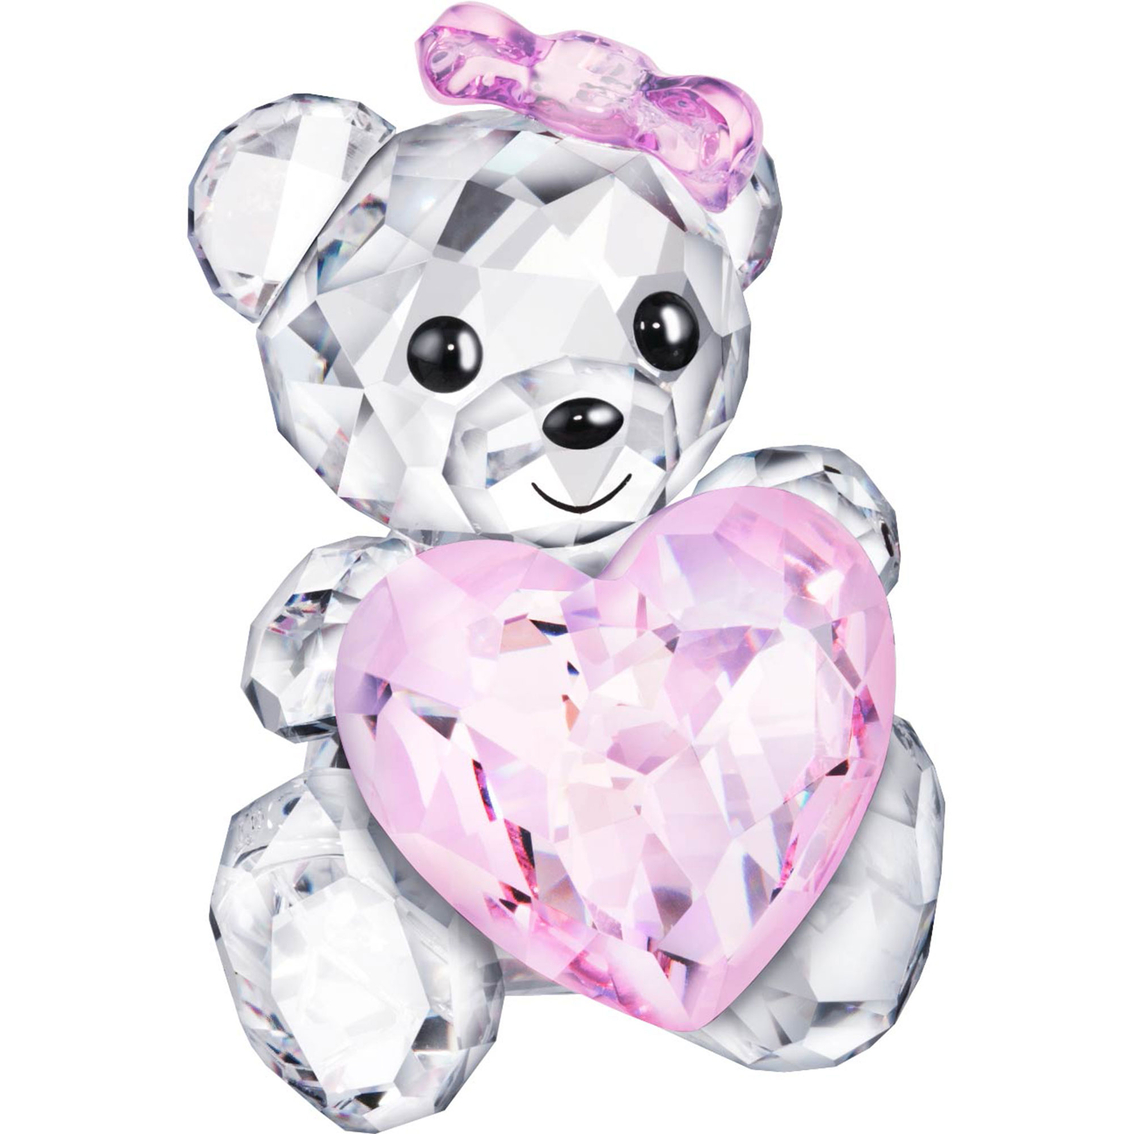 3ac02625f0 Swarovski Only For You Kris Bear | Collectible Figurines | Gifts ...